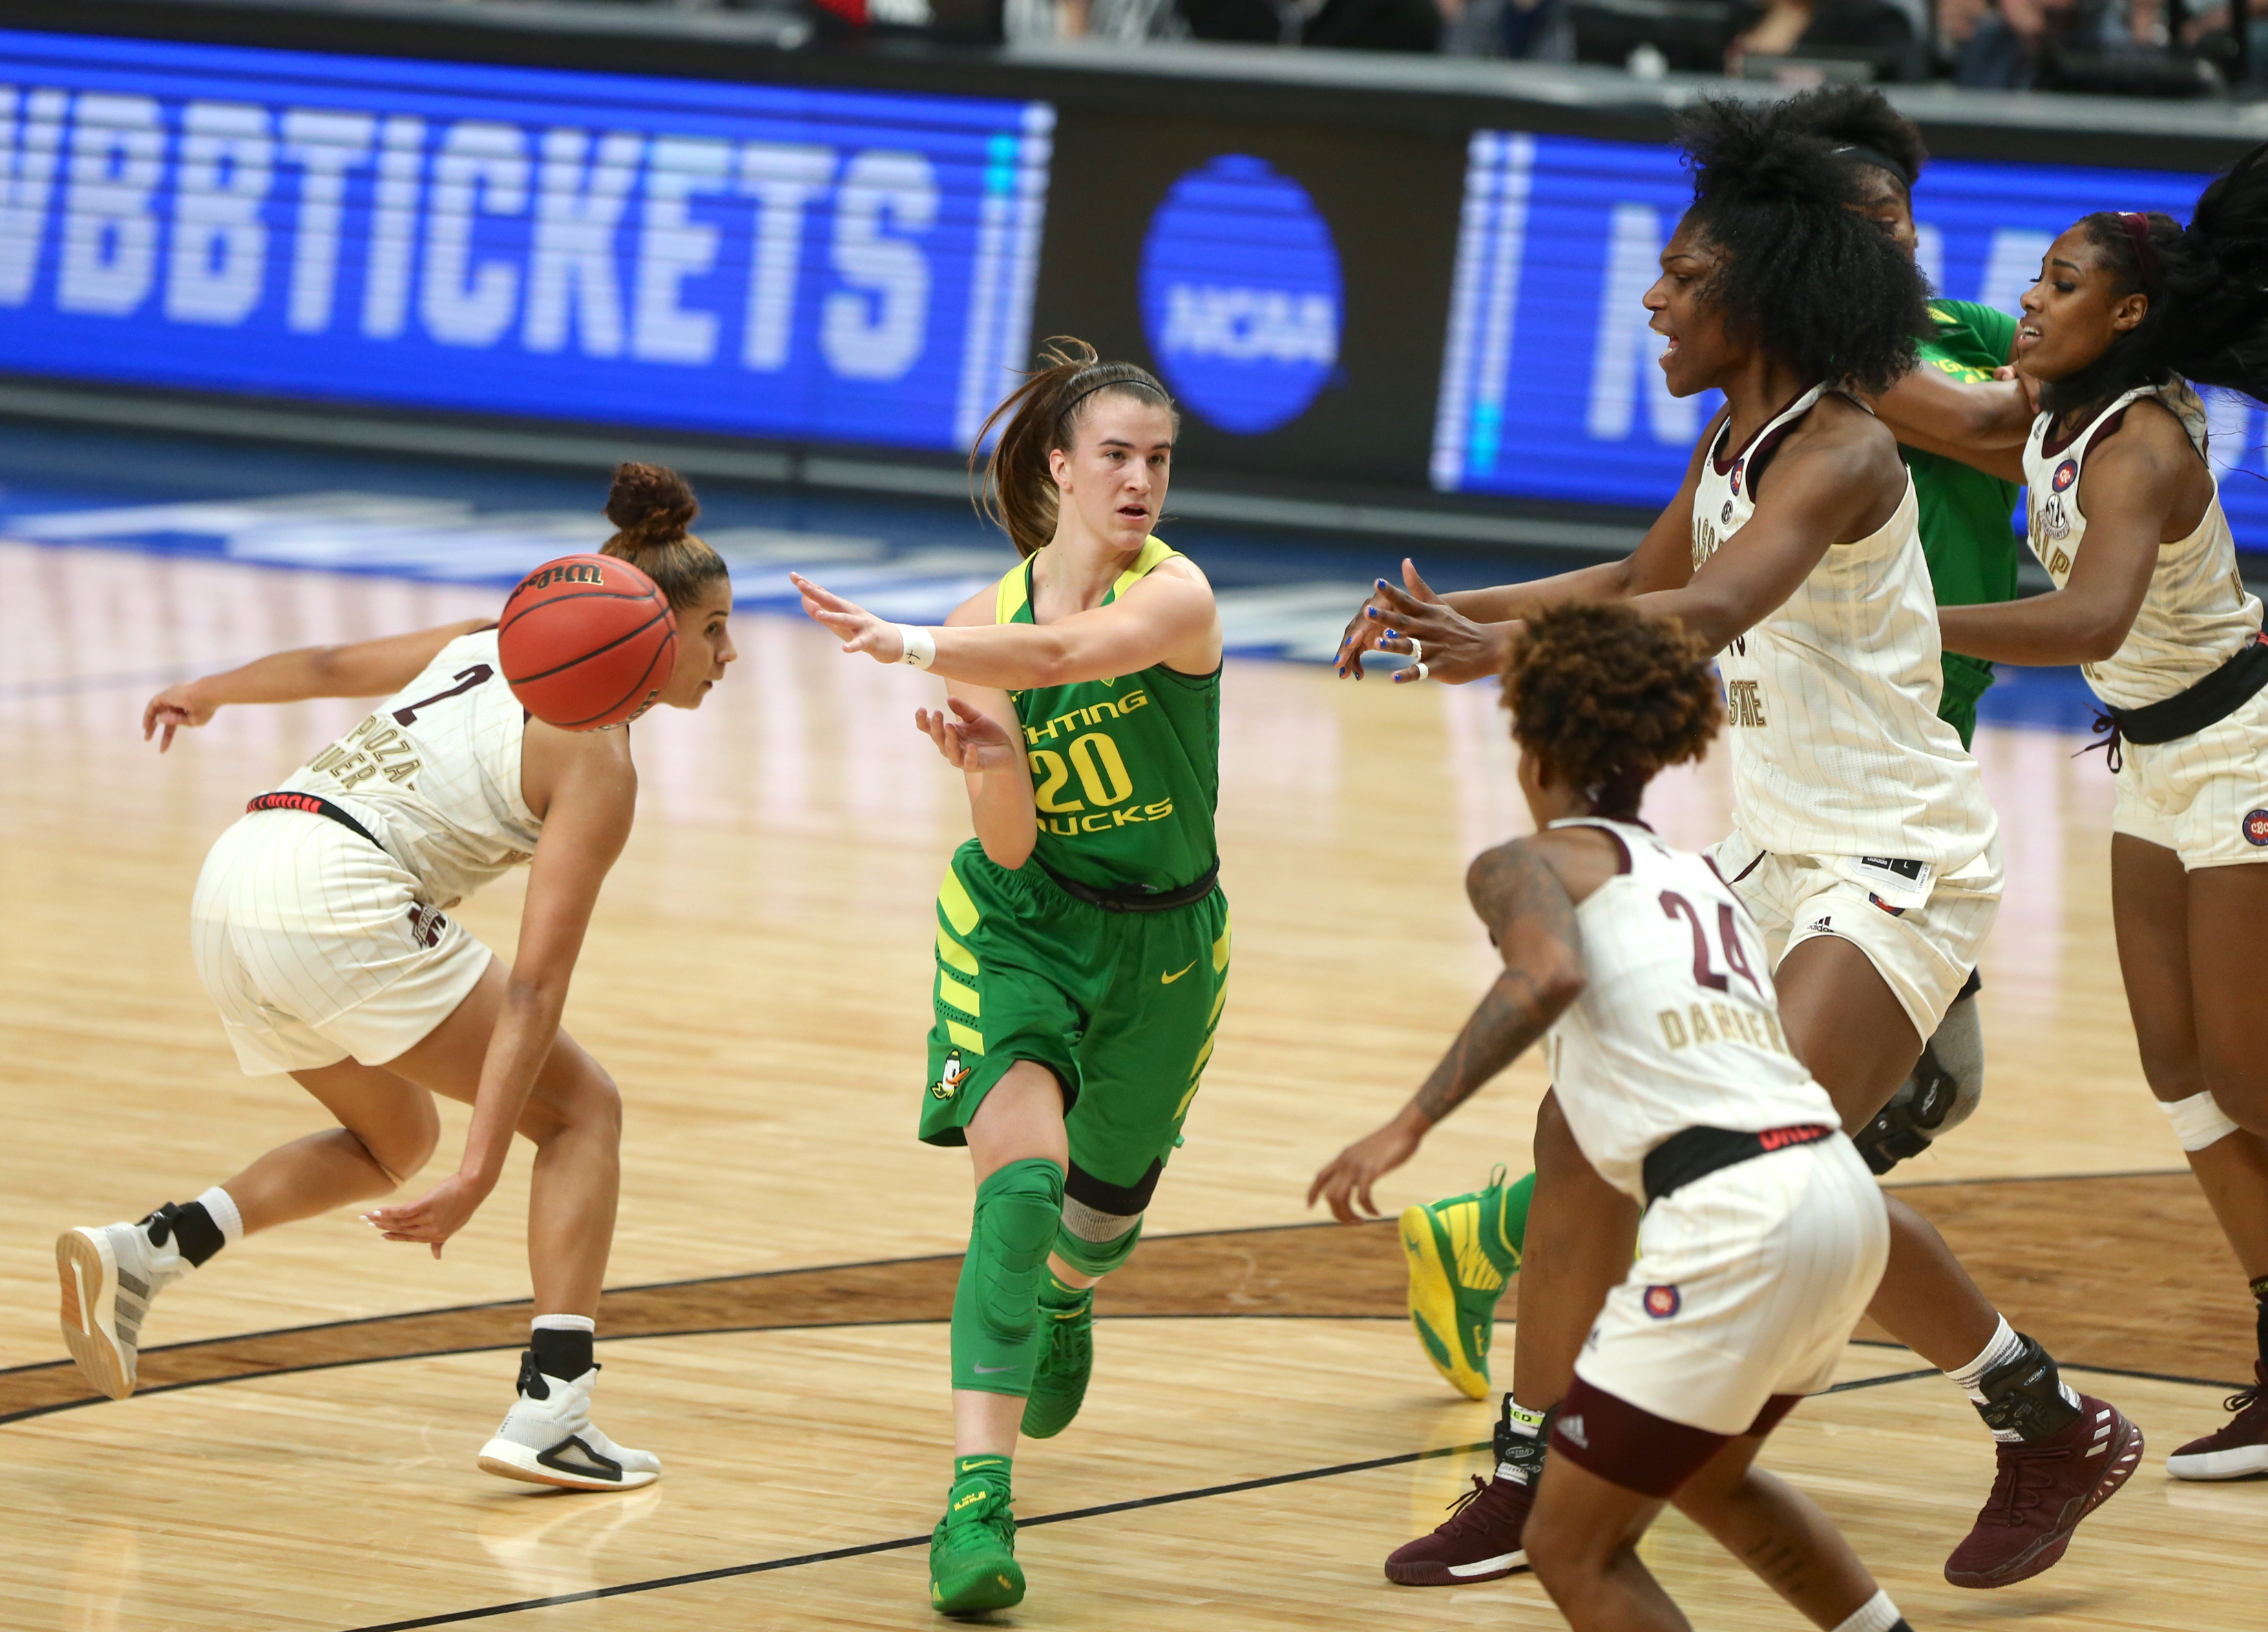 Oregon Ducks are coaches preseason pick to win Pac-12 women's basketball in 2019-20, Oregon State third